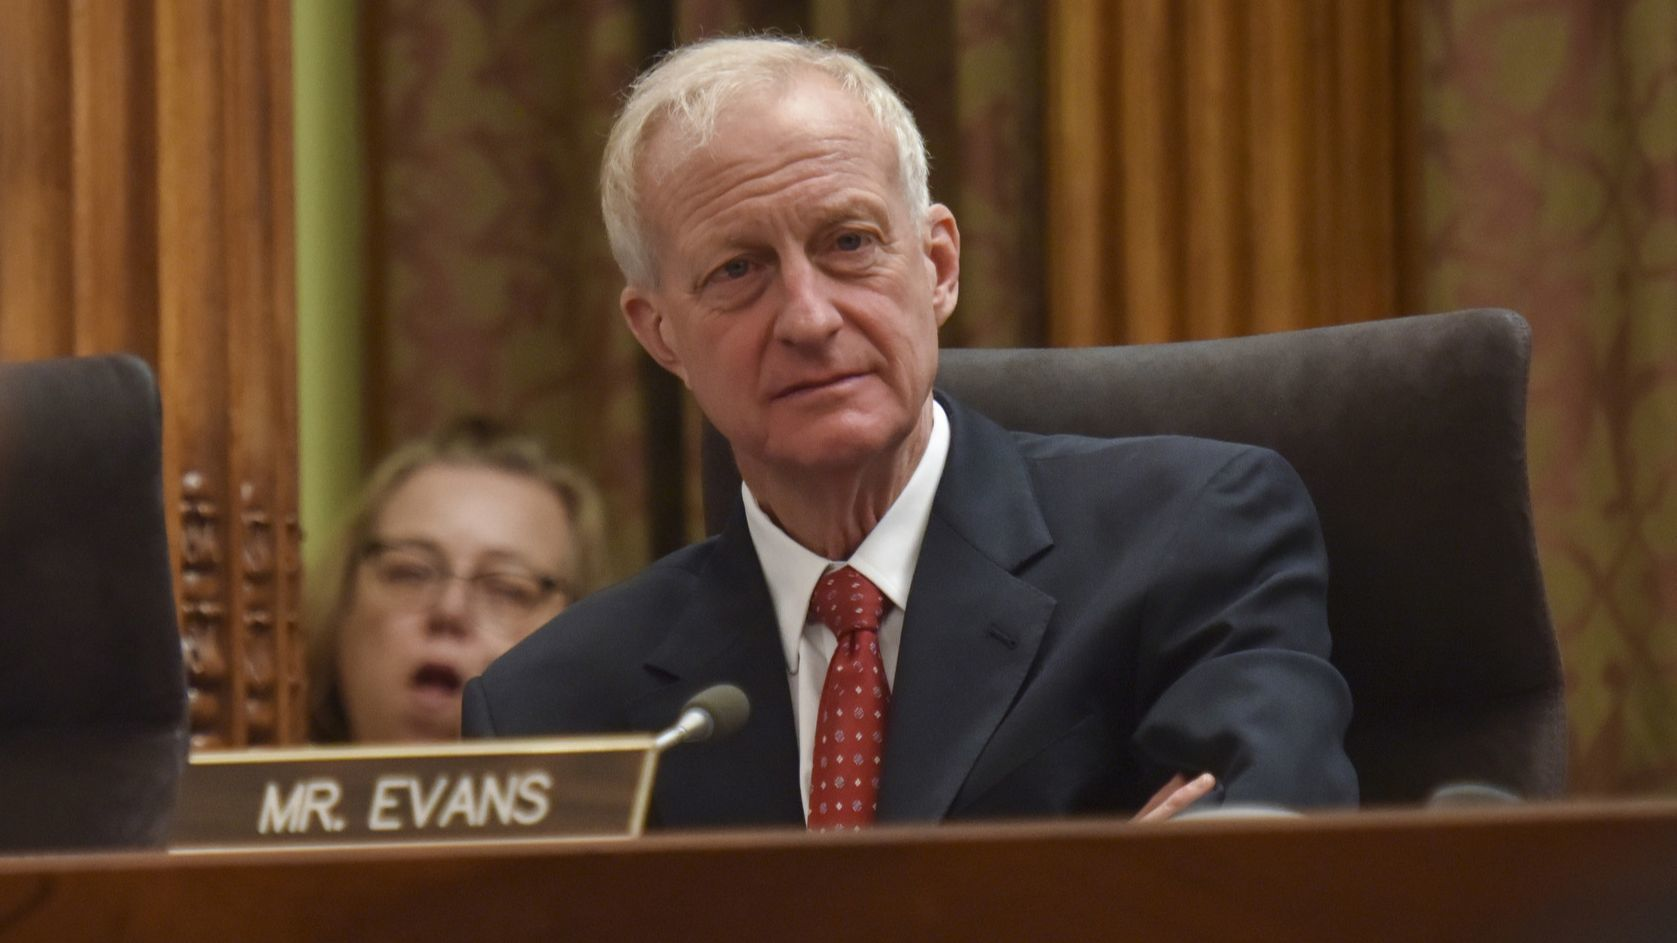 Jack Evans to resign from Metro board after probe shows he 'knowingly' violated rules